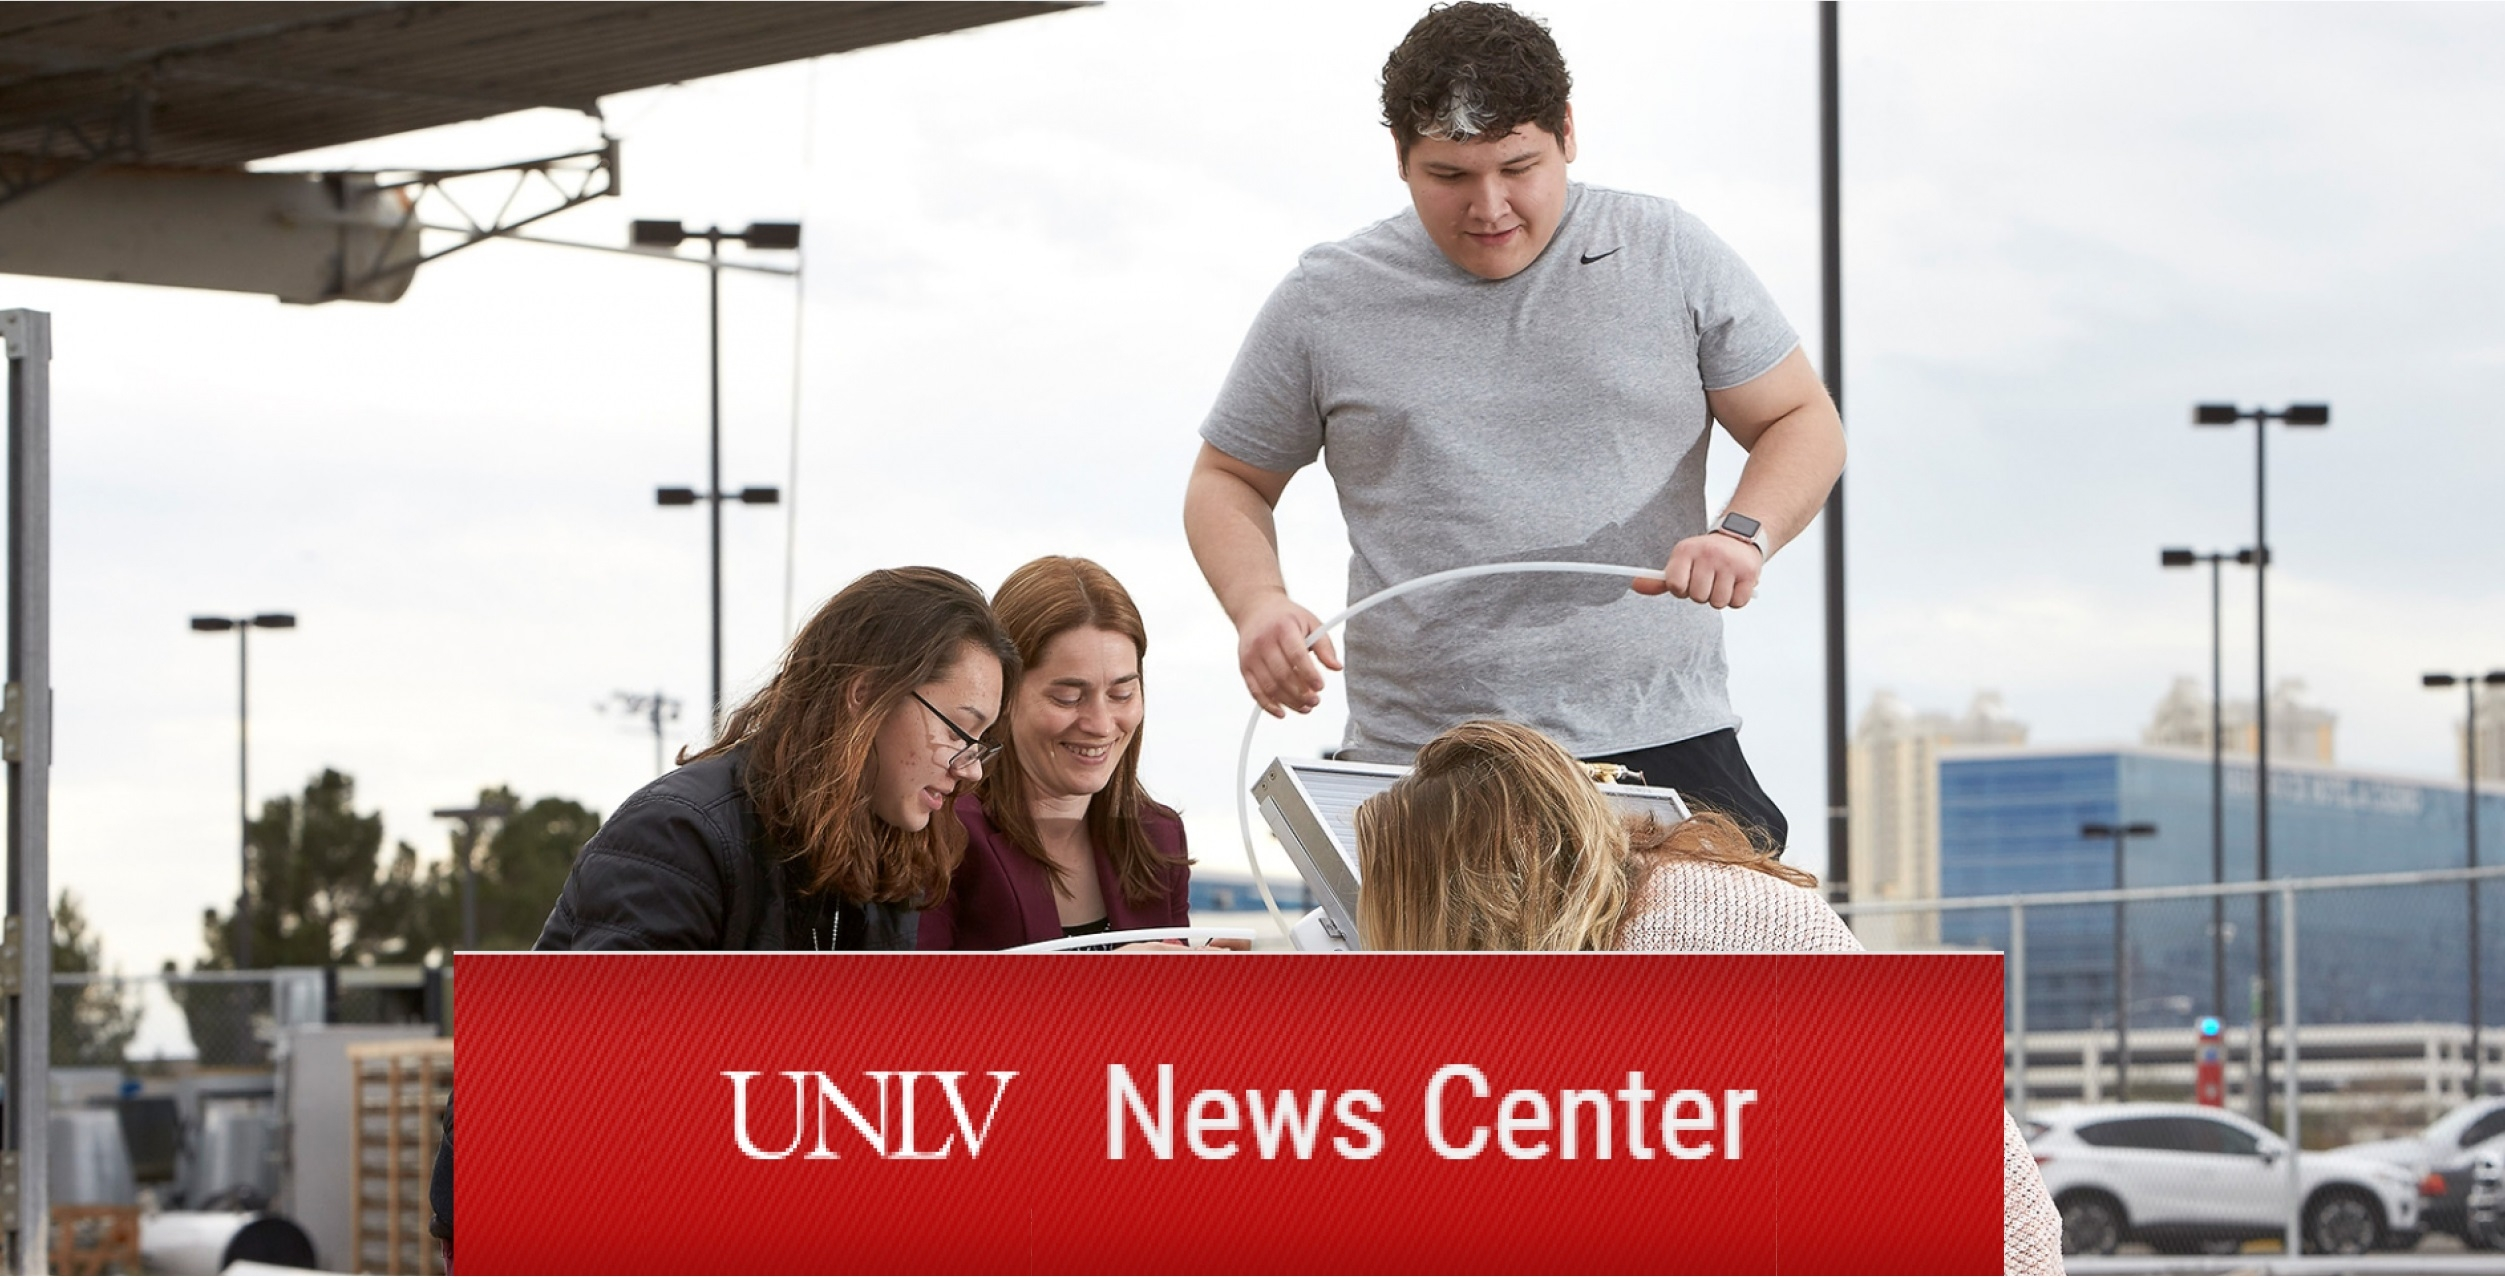 UNLV News Center: Shining a Light on Solar Technology (and Future Careers)